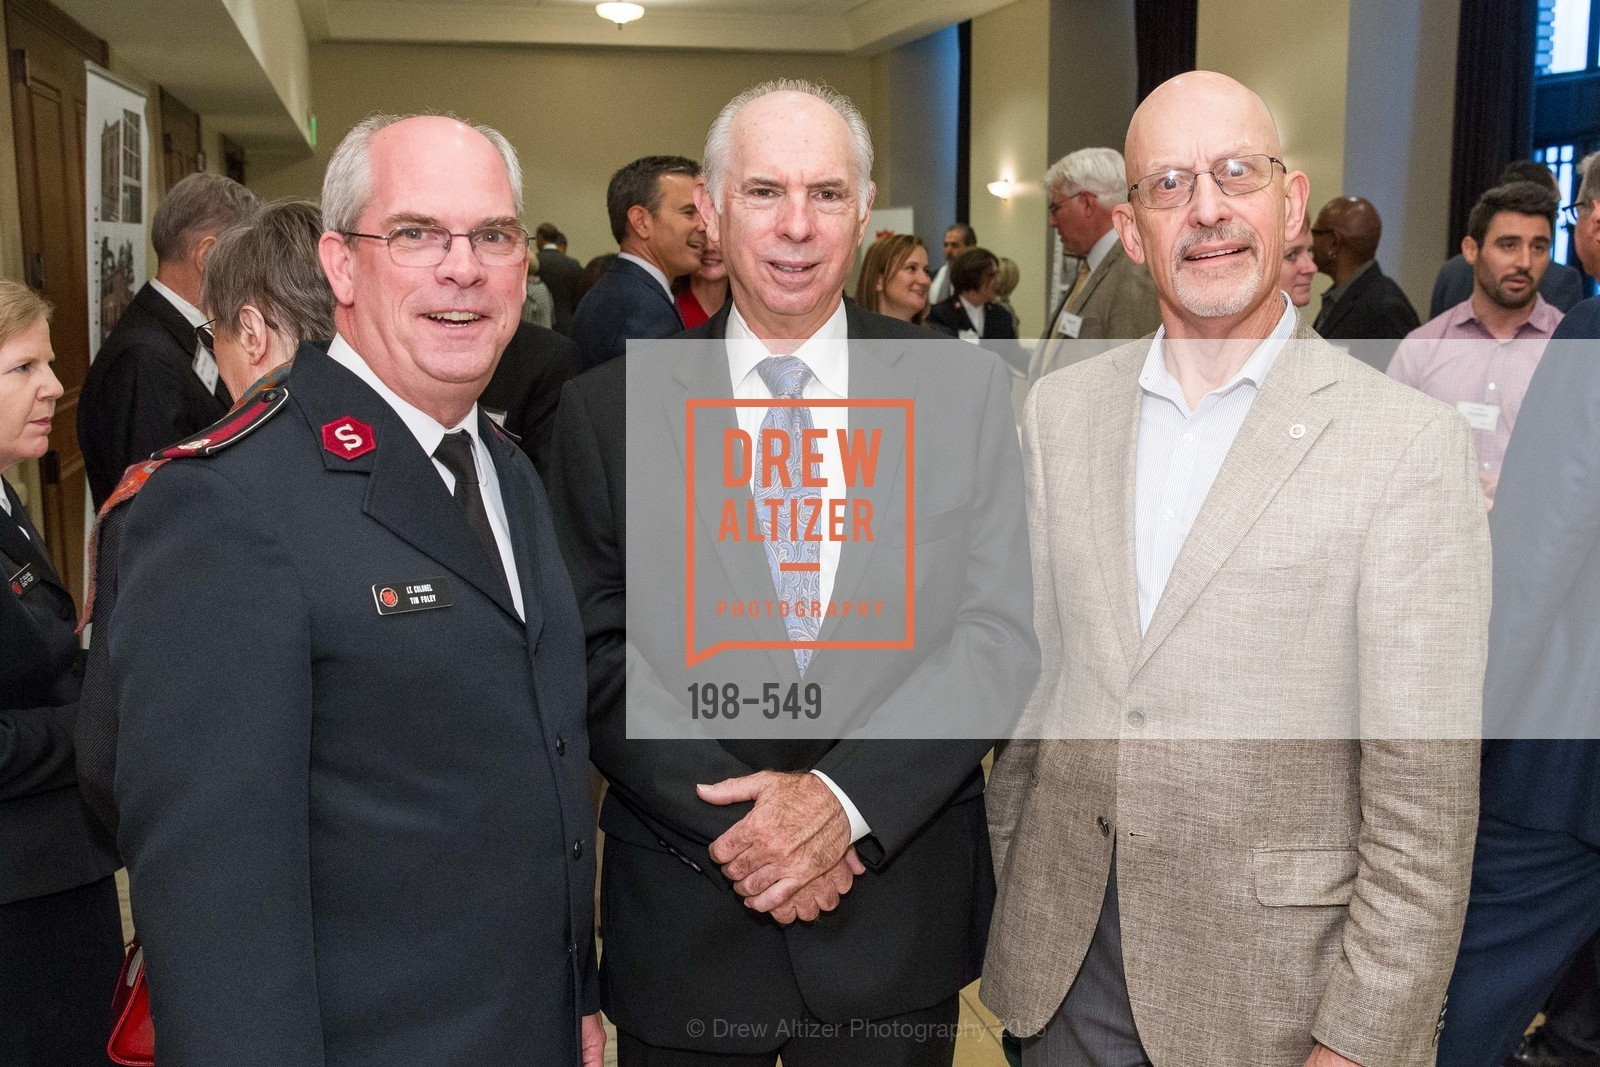 Lt. Col. Tim Foley, Dennis Murphy, James Eyres, The Salvation Army's 12th Annual Holiday Luncheon Kettle Kickoff, The Bently Reserve. 301 Battery St, November 18th, 2015,Drew Altizer, Drew Altizer Photography, full-service agency, private events, San Francisco photographer, photographer california